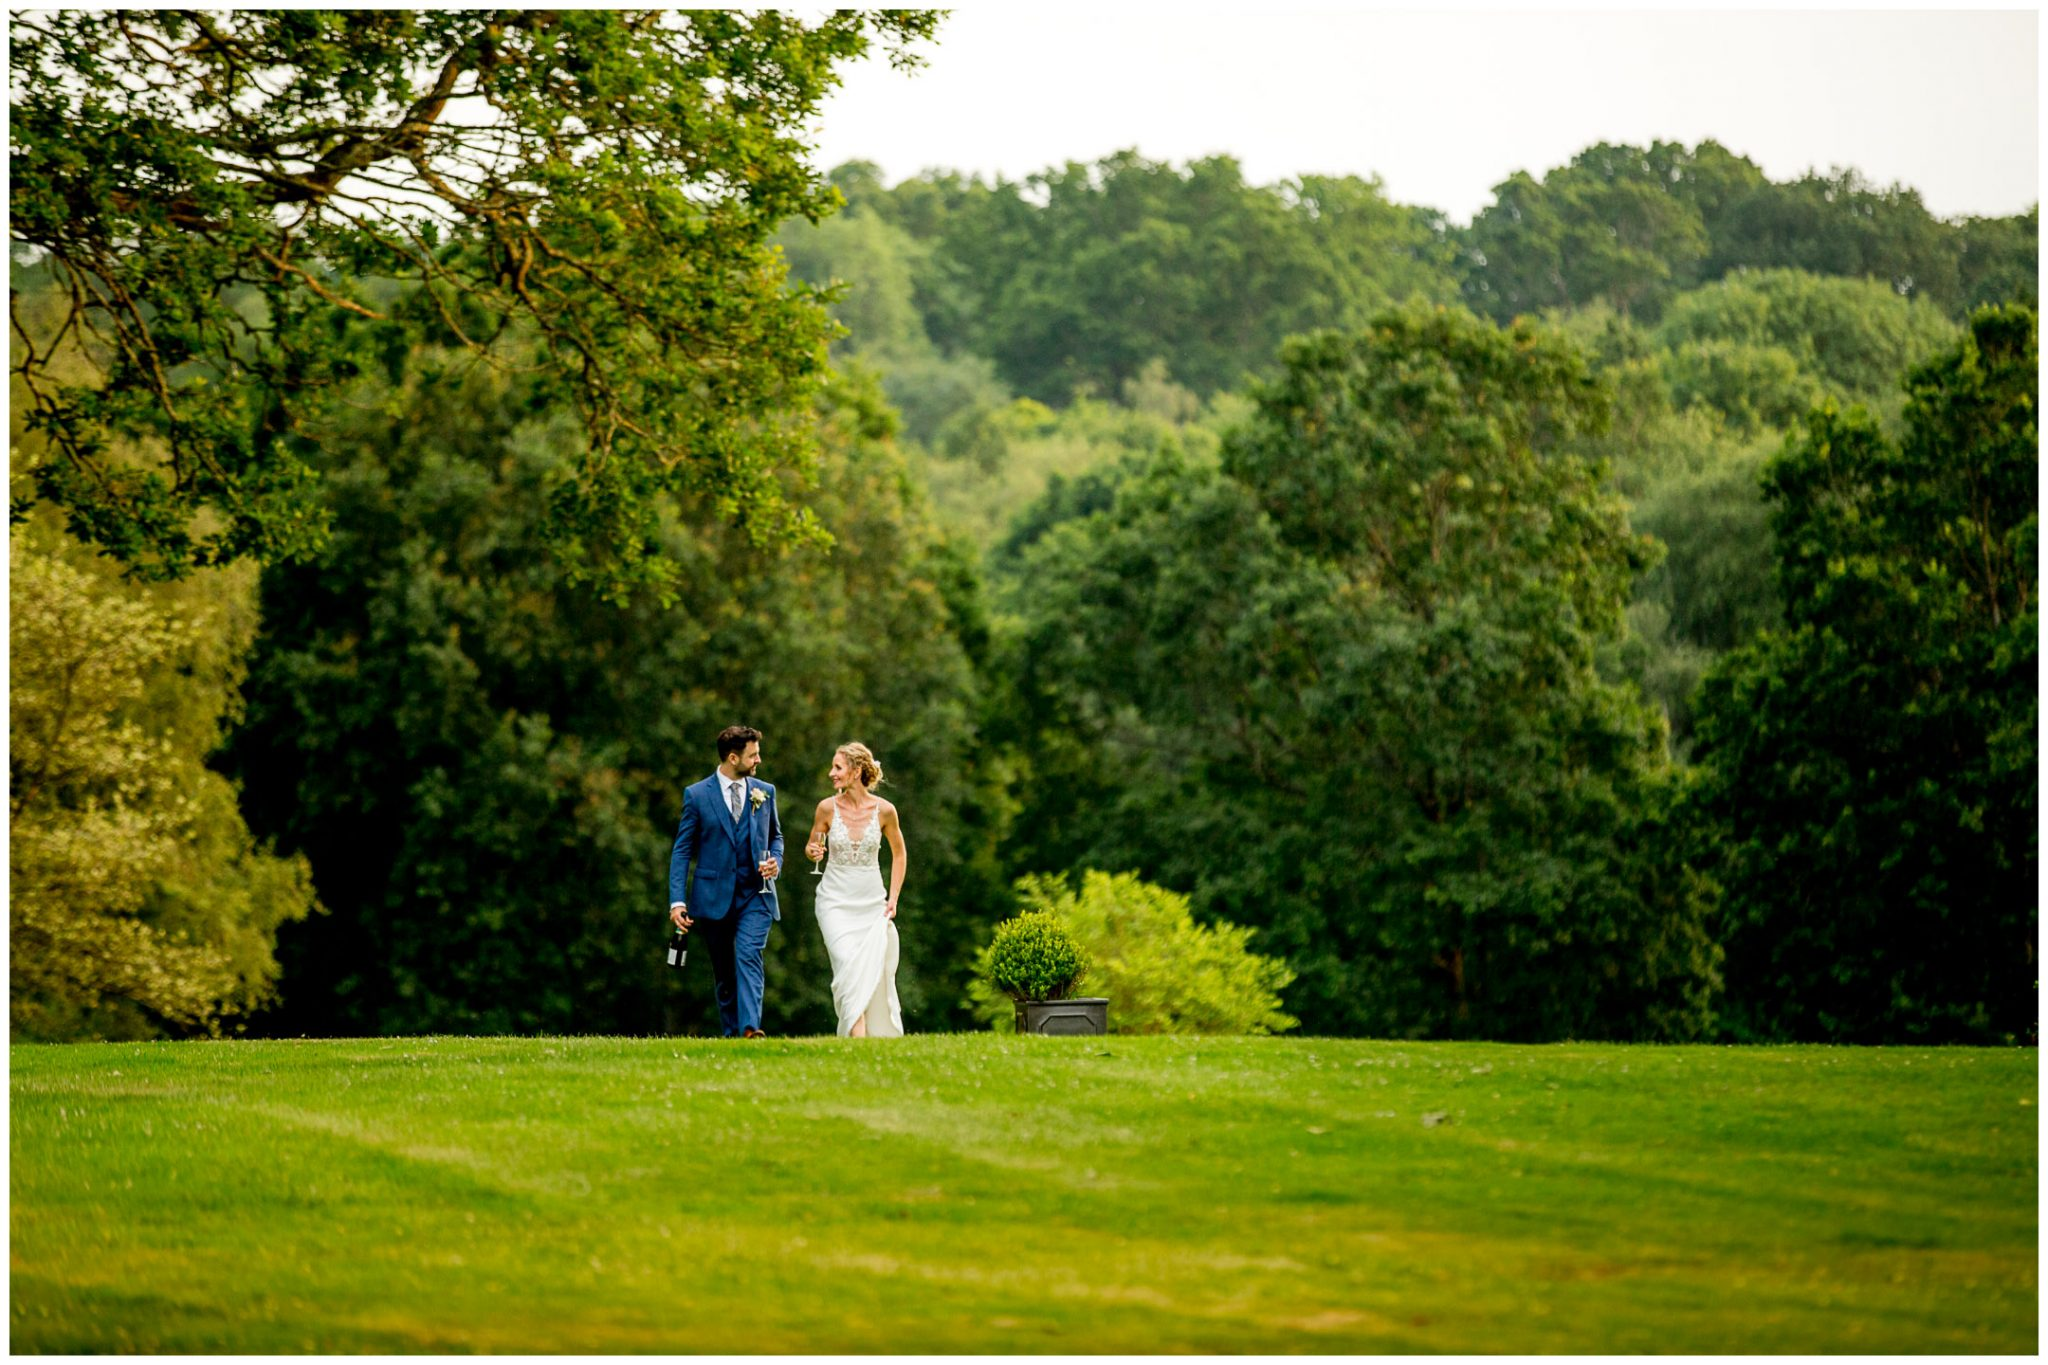 Bride and groom walk up the hill towards their wedding reception